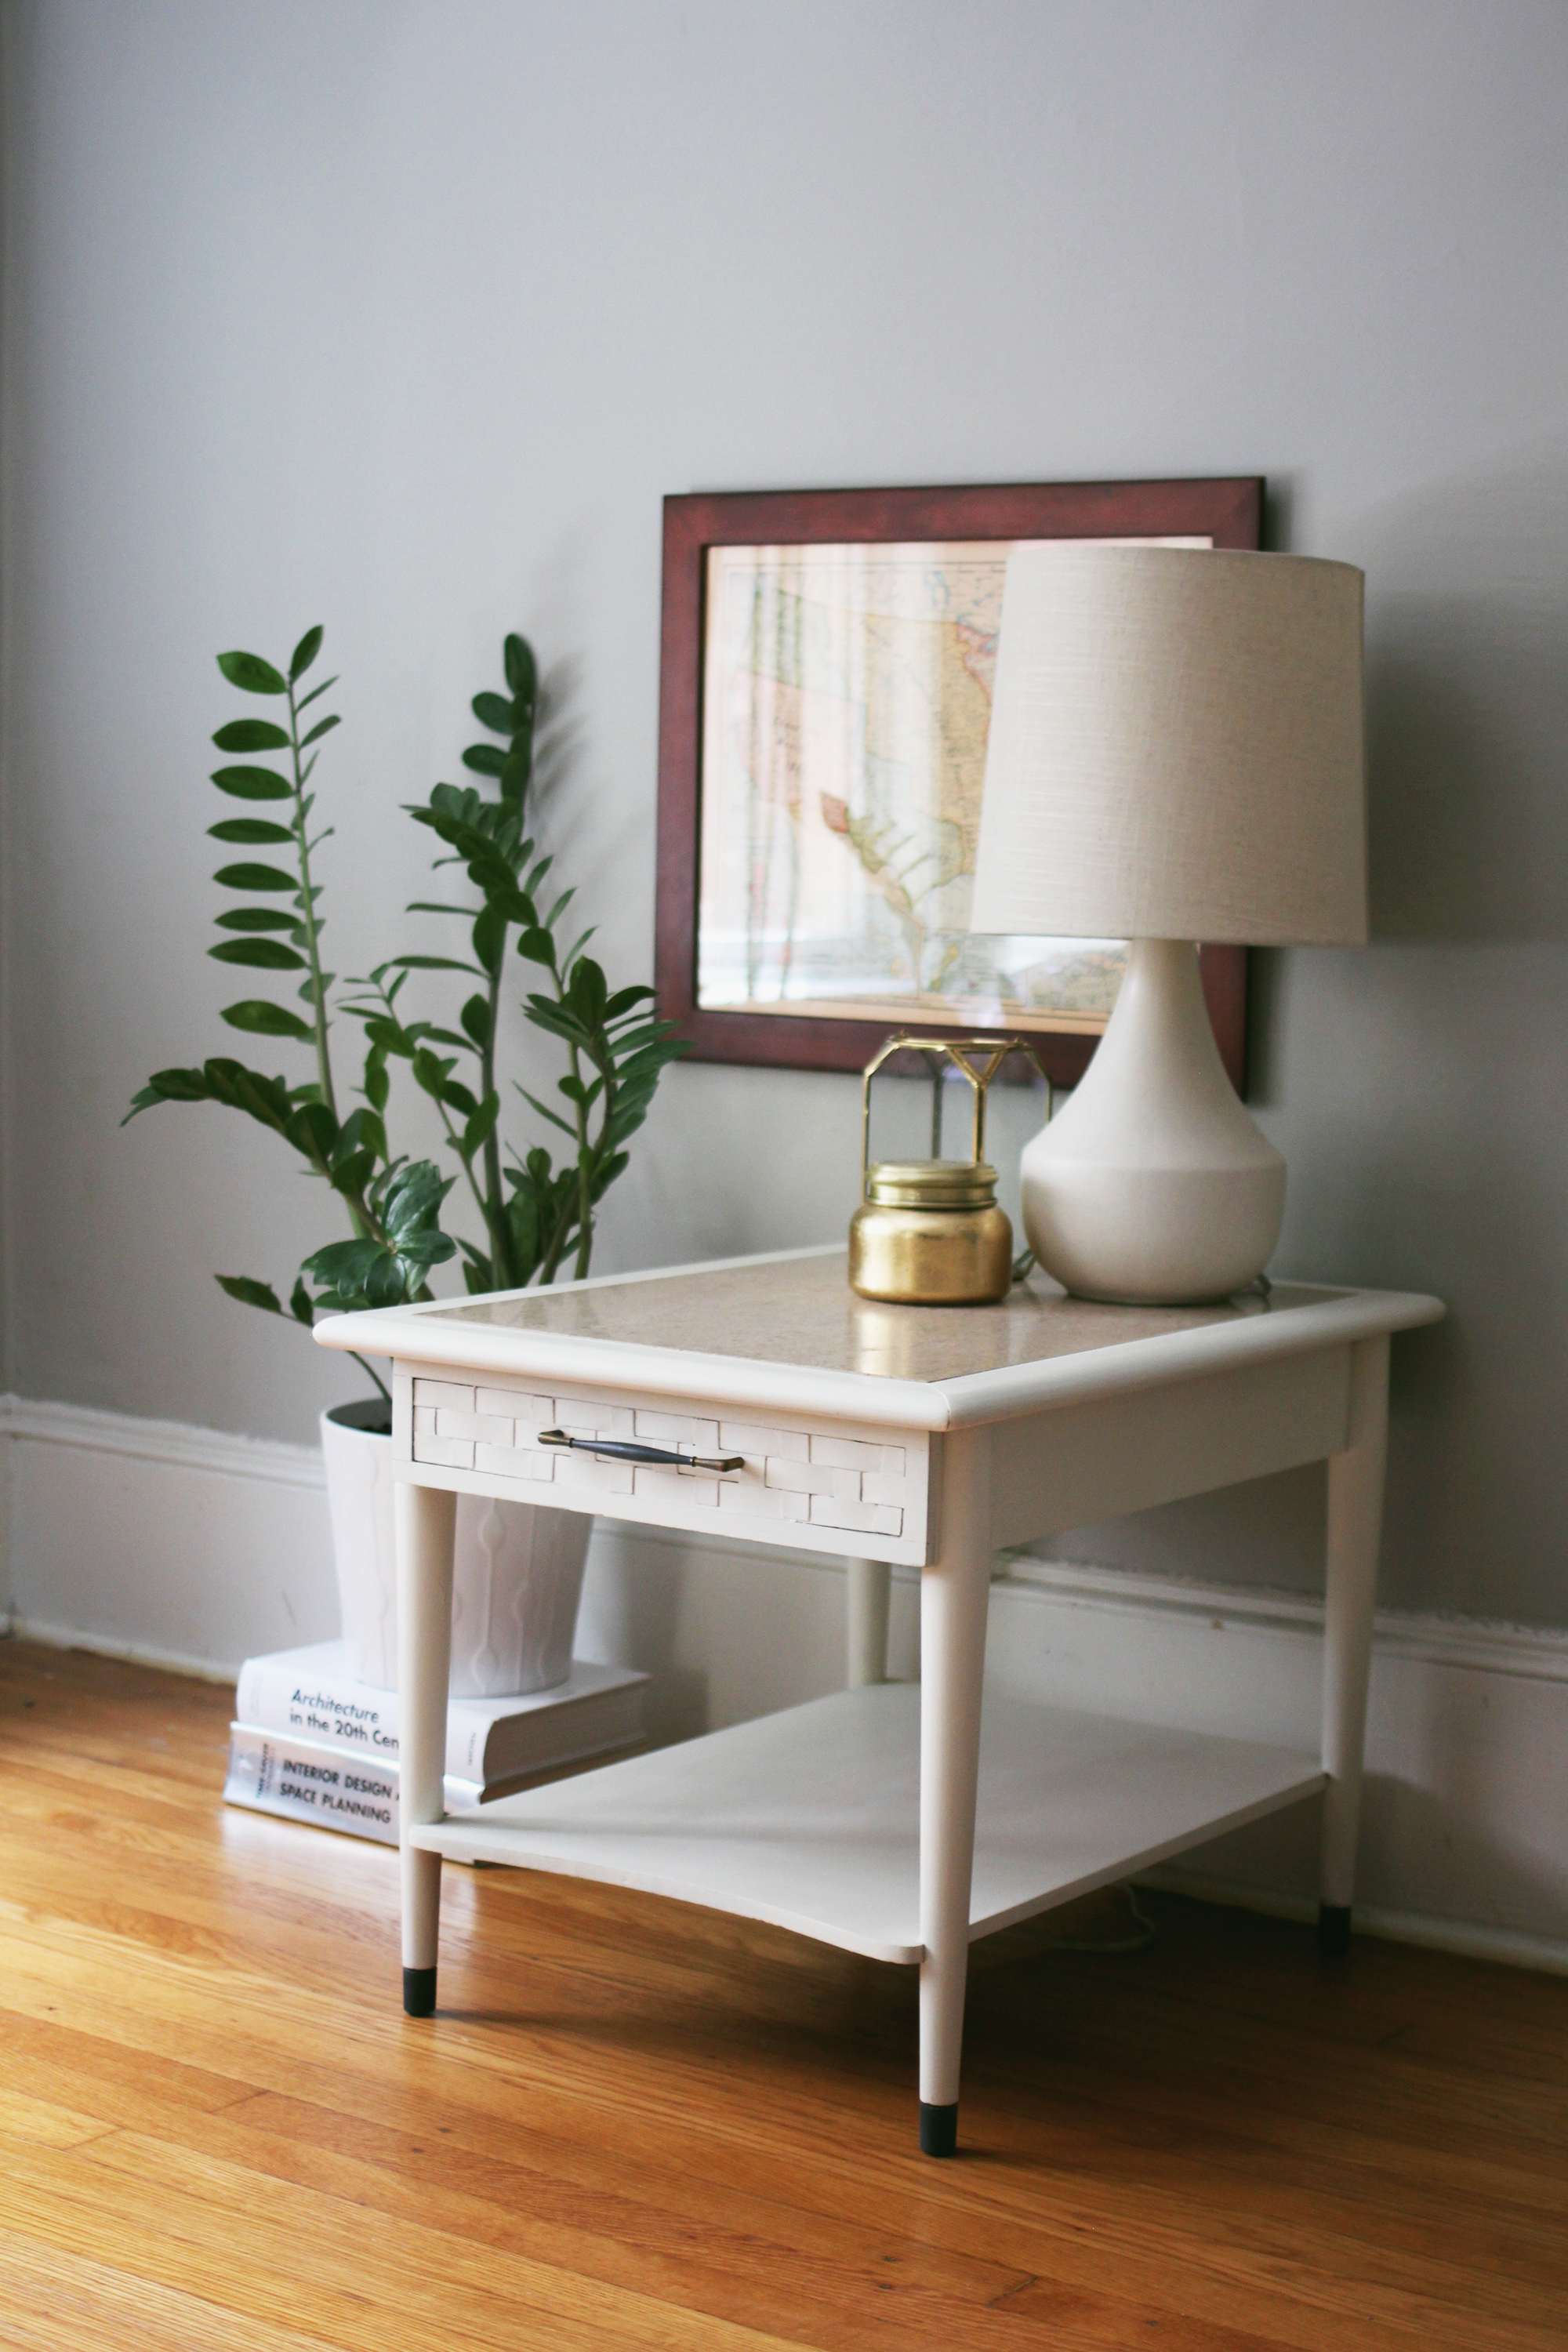 jo-torrijos-a-simpler-design-atlanta-painted-furniture-annie-sloan-old-white-mid-century-side-table-3.jpg